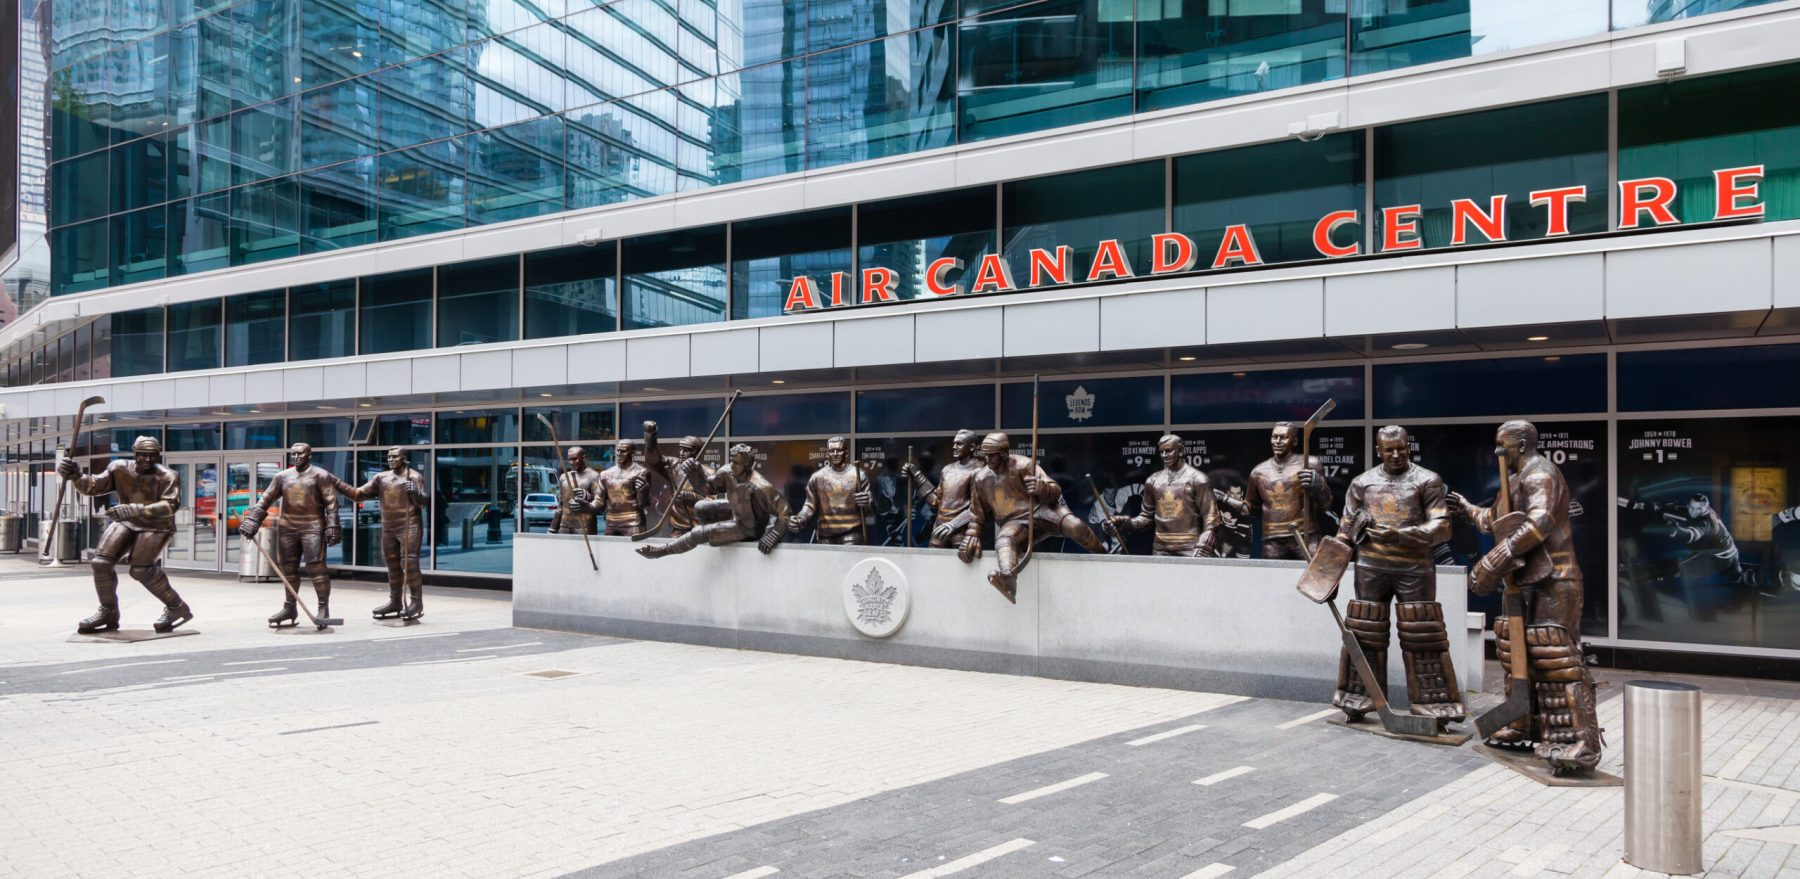 Statues of Toronto Maple Leafs ice hockey players pictured outside the Air Canada Centre.  The centre has since been renamed the Scotiabank Arena.